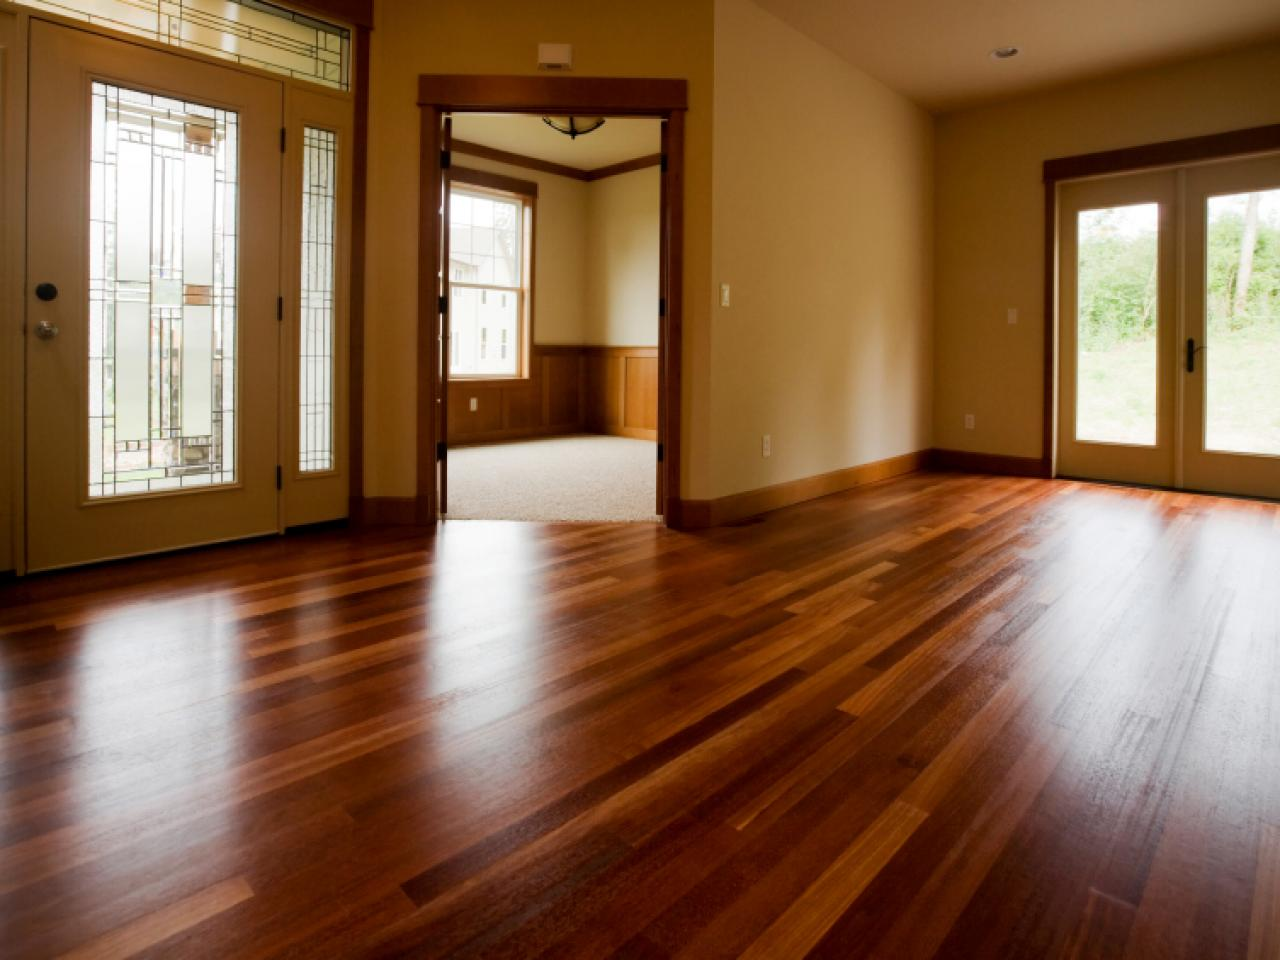 hardwood floor tiles tips for cleaning tile, wood and vinyl floors NTHUFZC